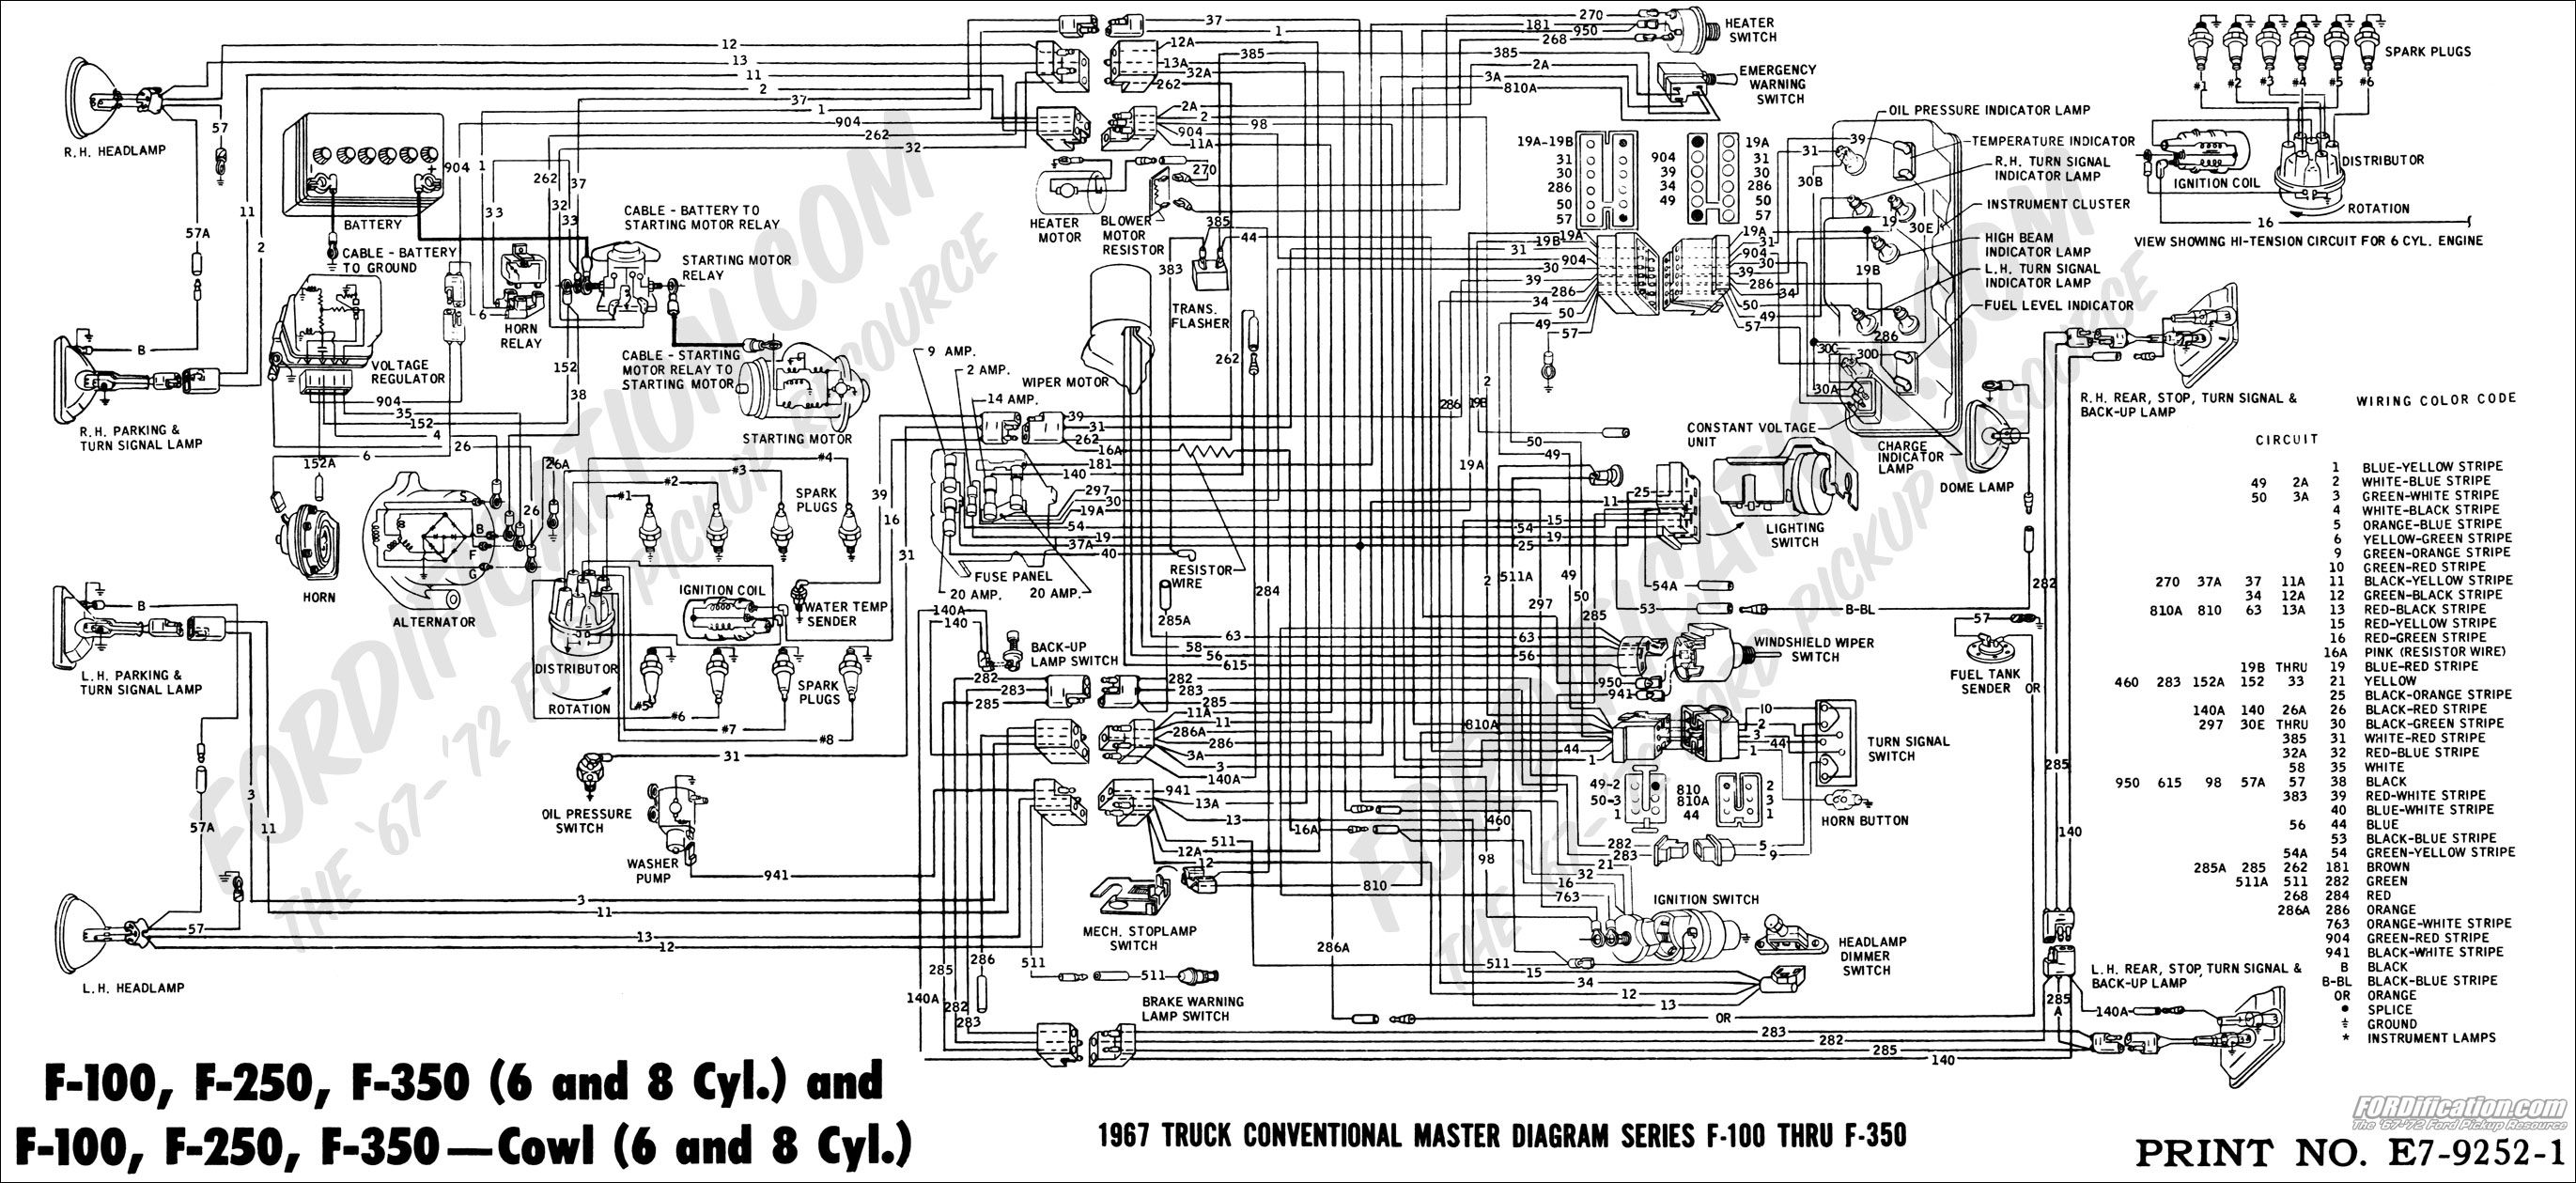 8e608320d8e6c71ff5bbdb2efdd7ada1 ford truck technical drawings and schematics section h wiring Ford E 350 Wiring Diagrams at love-stories.co